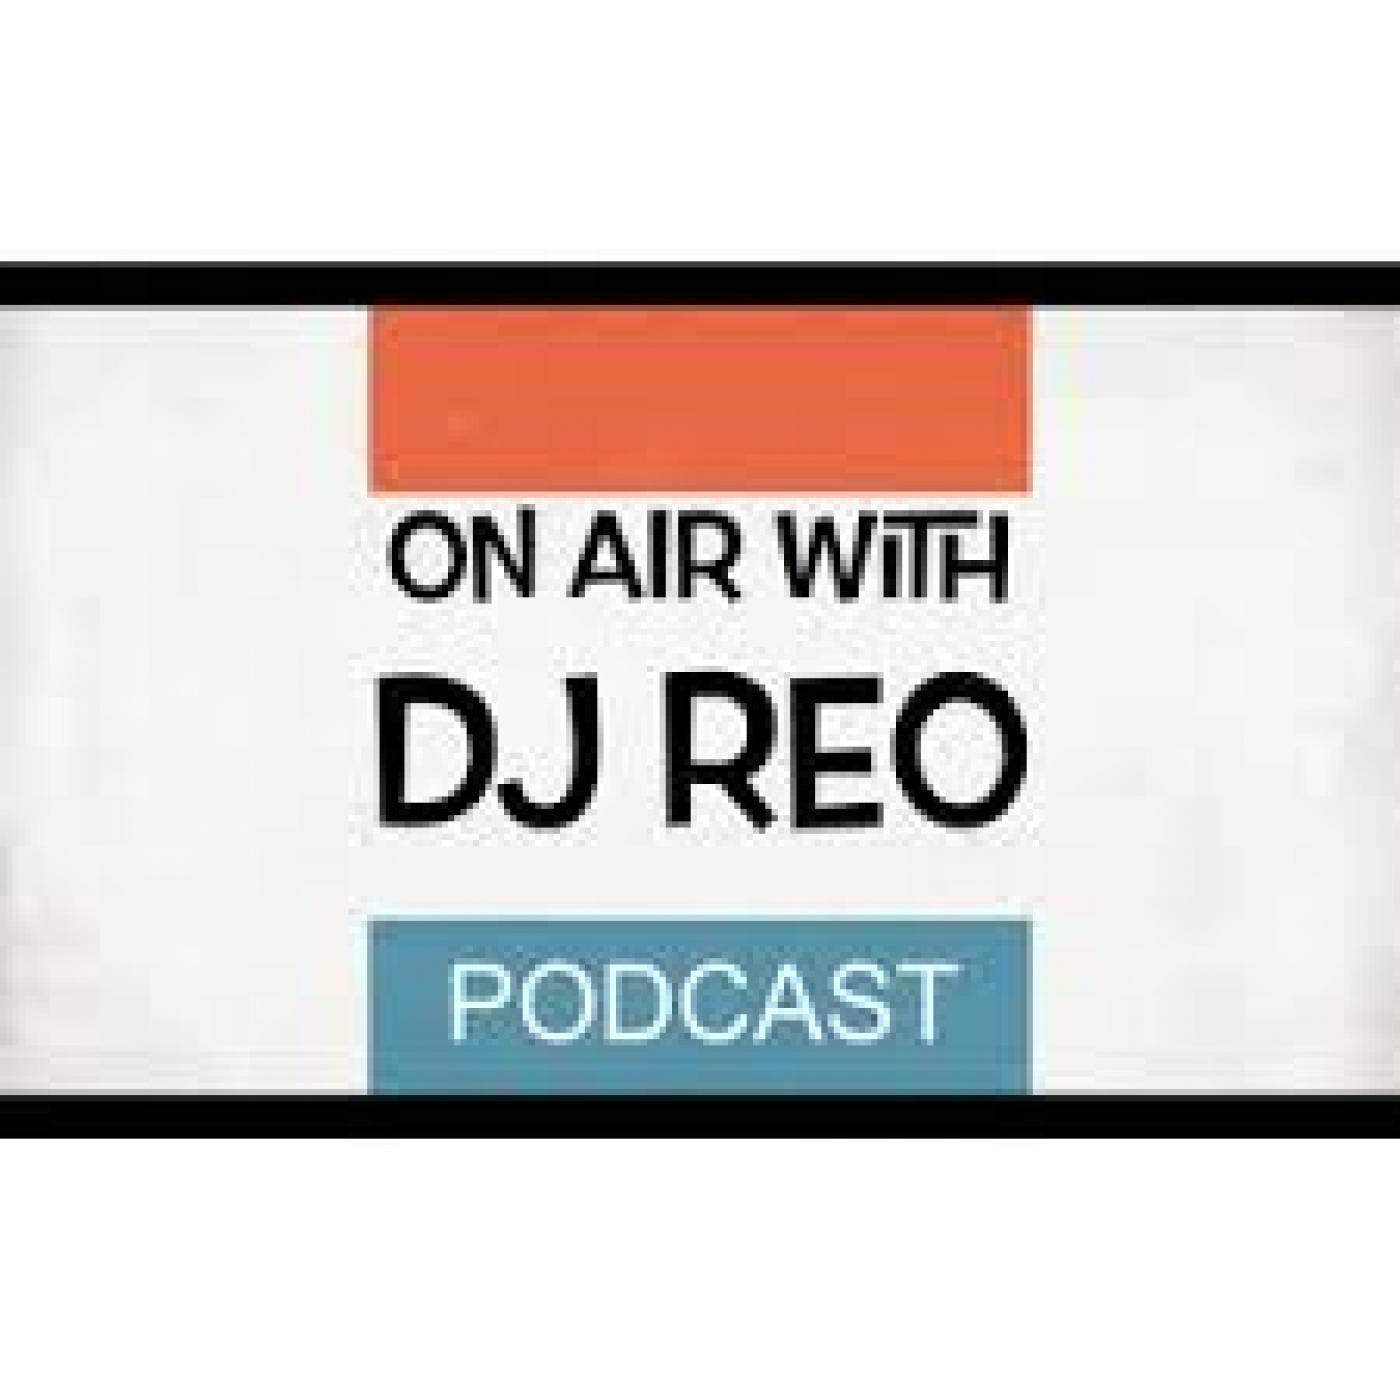 On air with DJ REO